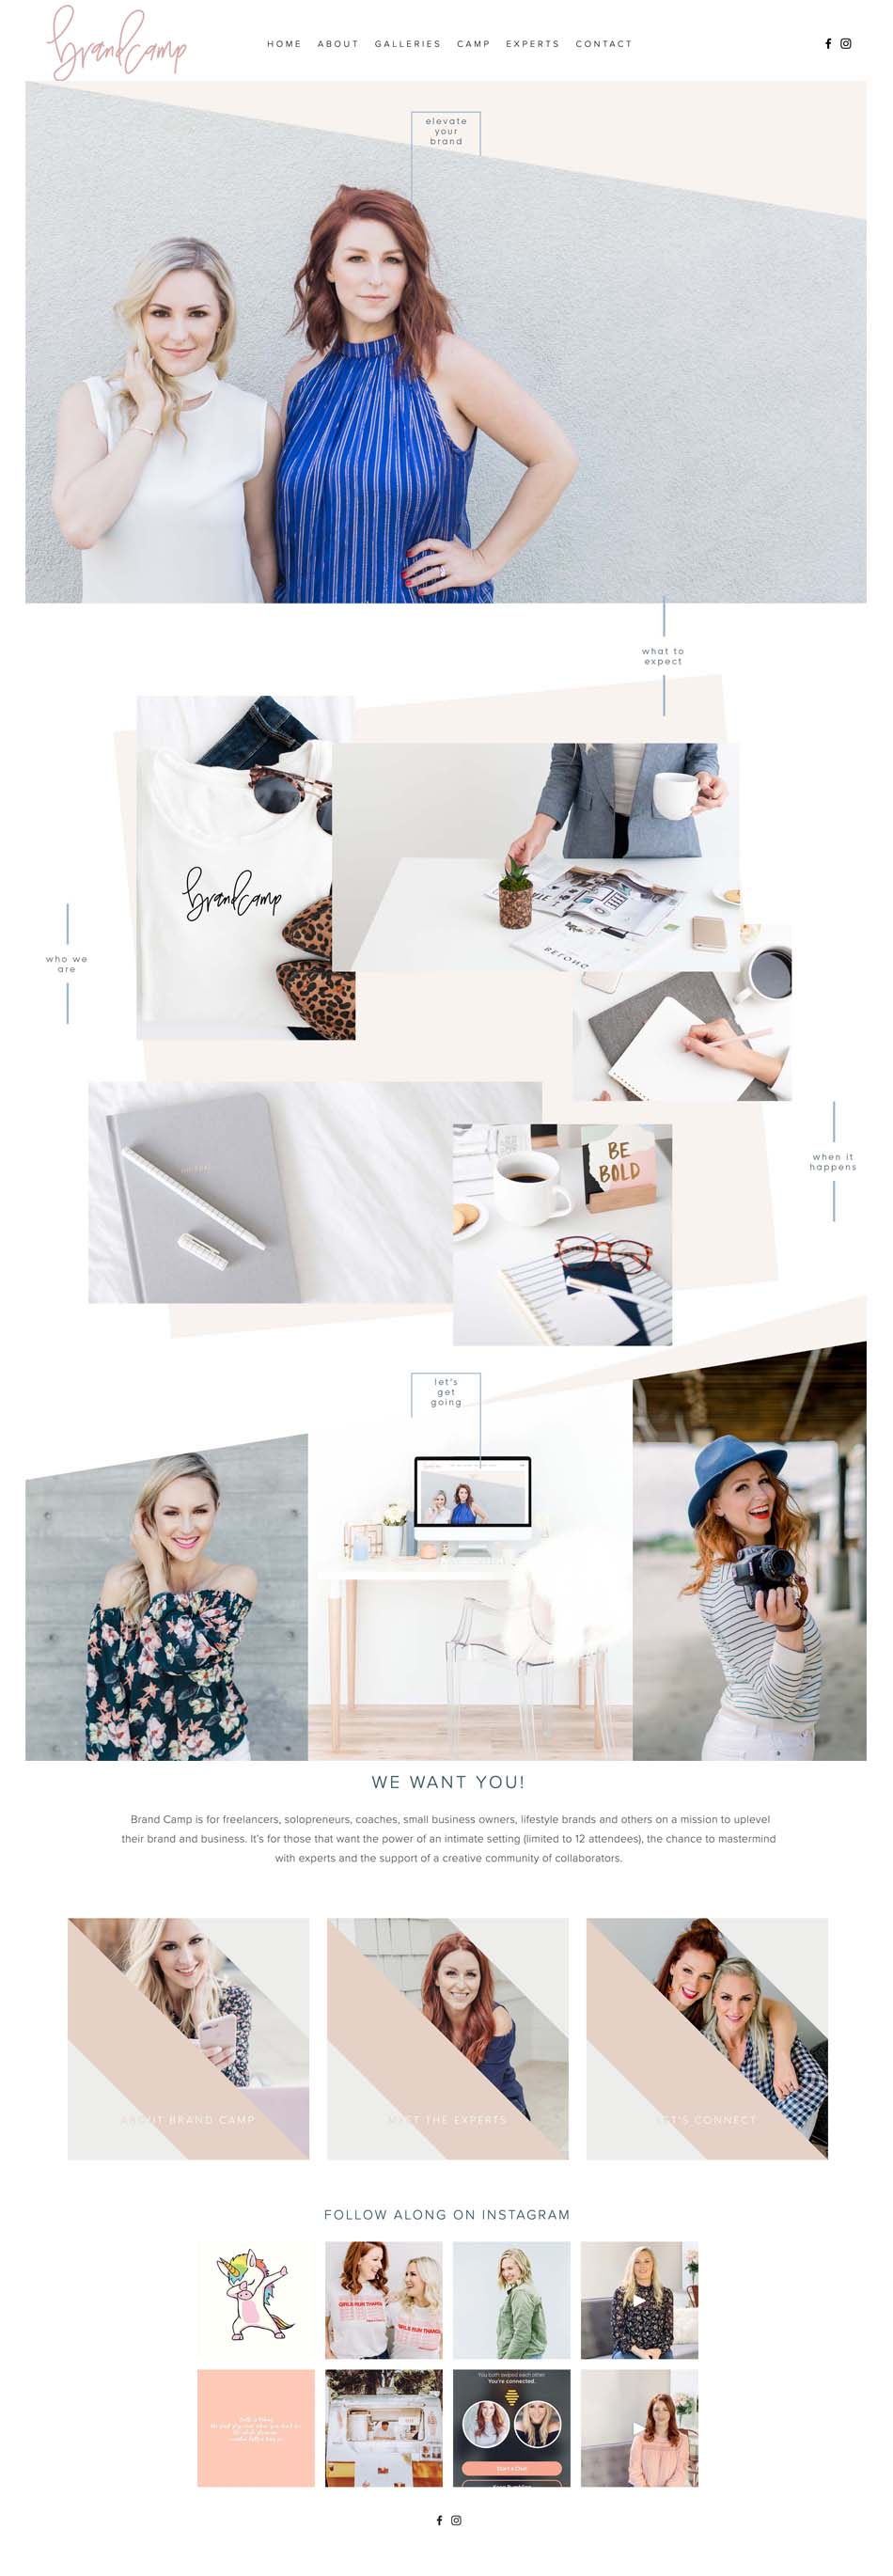 Brand Camp Website | The Editor's Touch Squarespace Website Designer | Lifestyle and Business Blogger